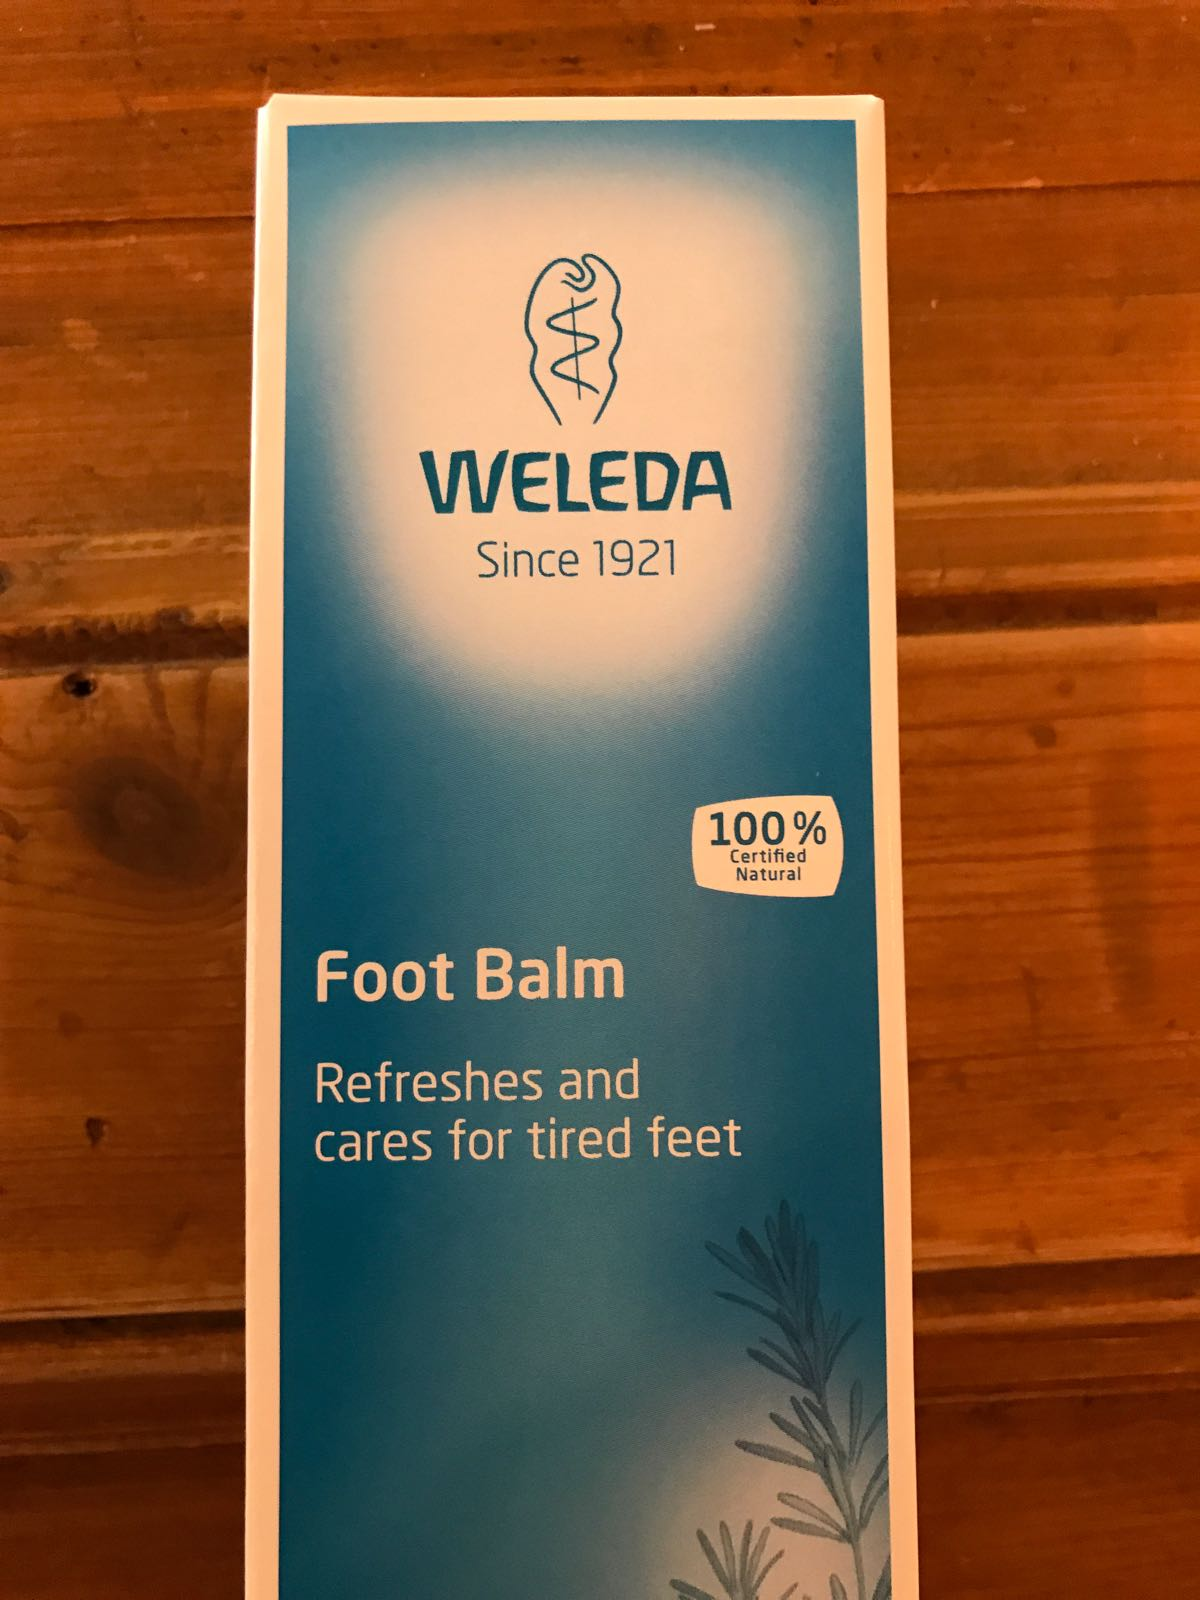 Foot Balm Weleda